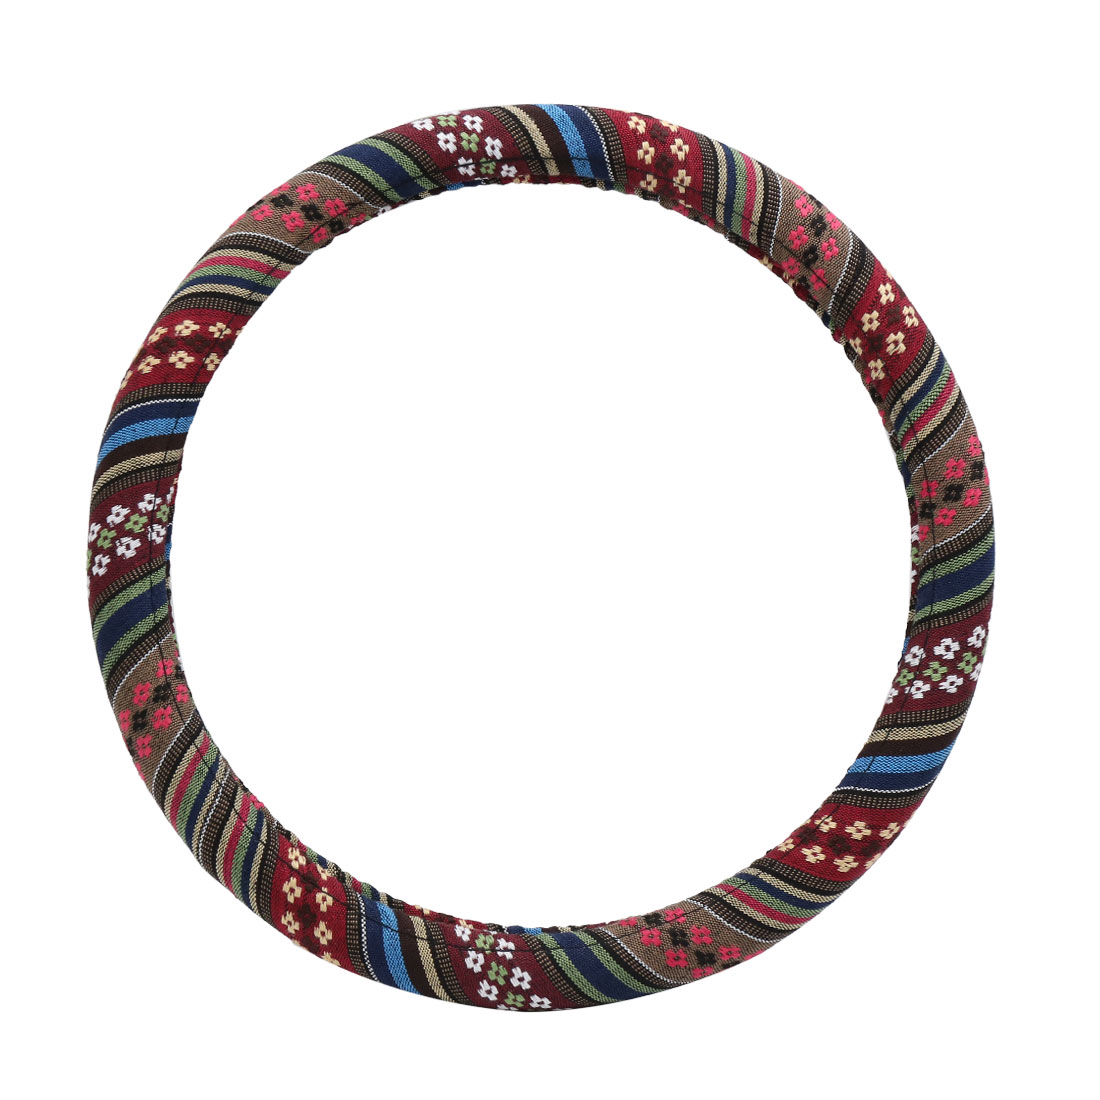 Ethnic Style Steering Wheel Cover Protector for Vehicle Car 39-40CM